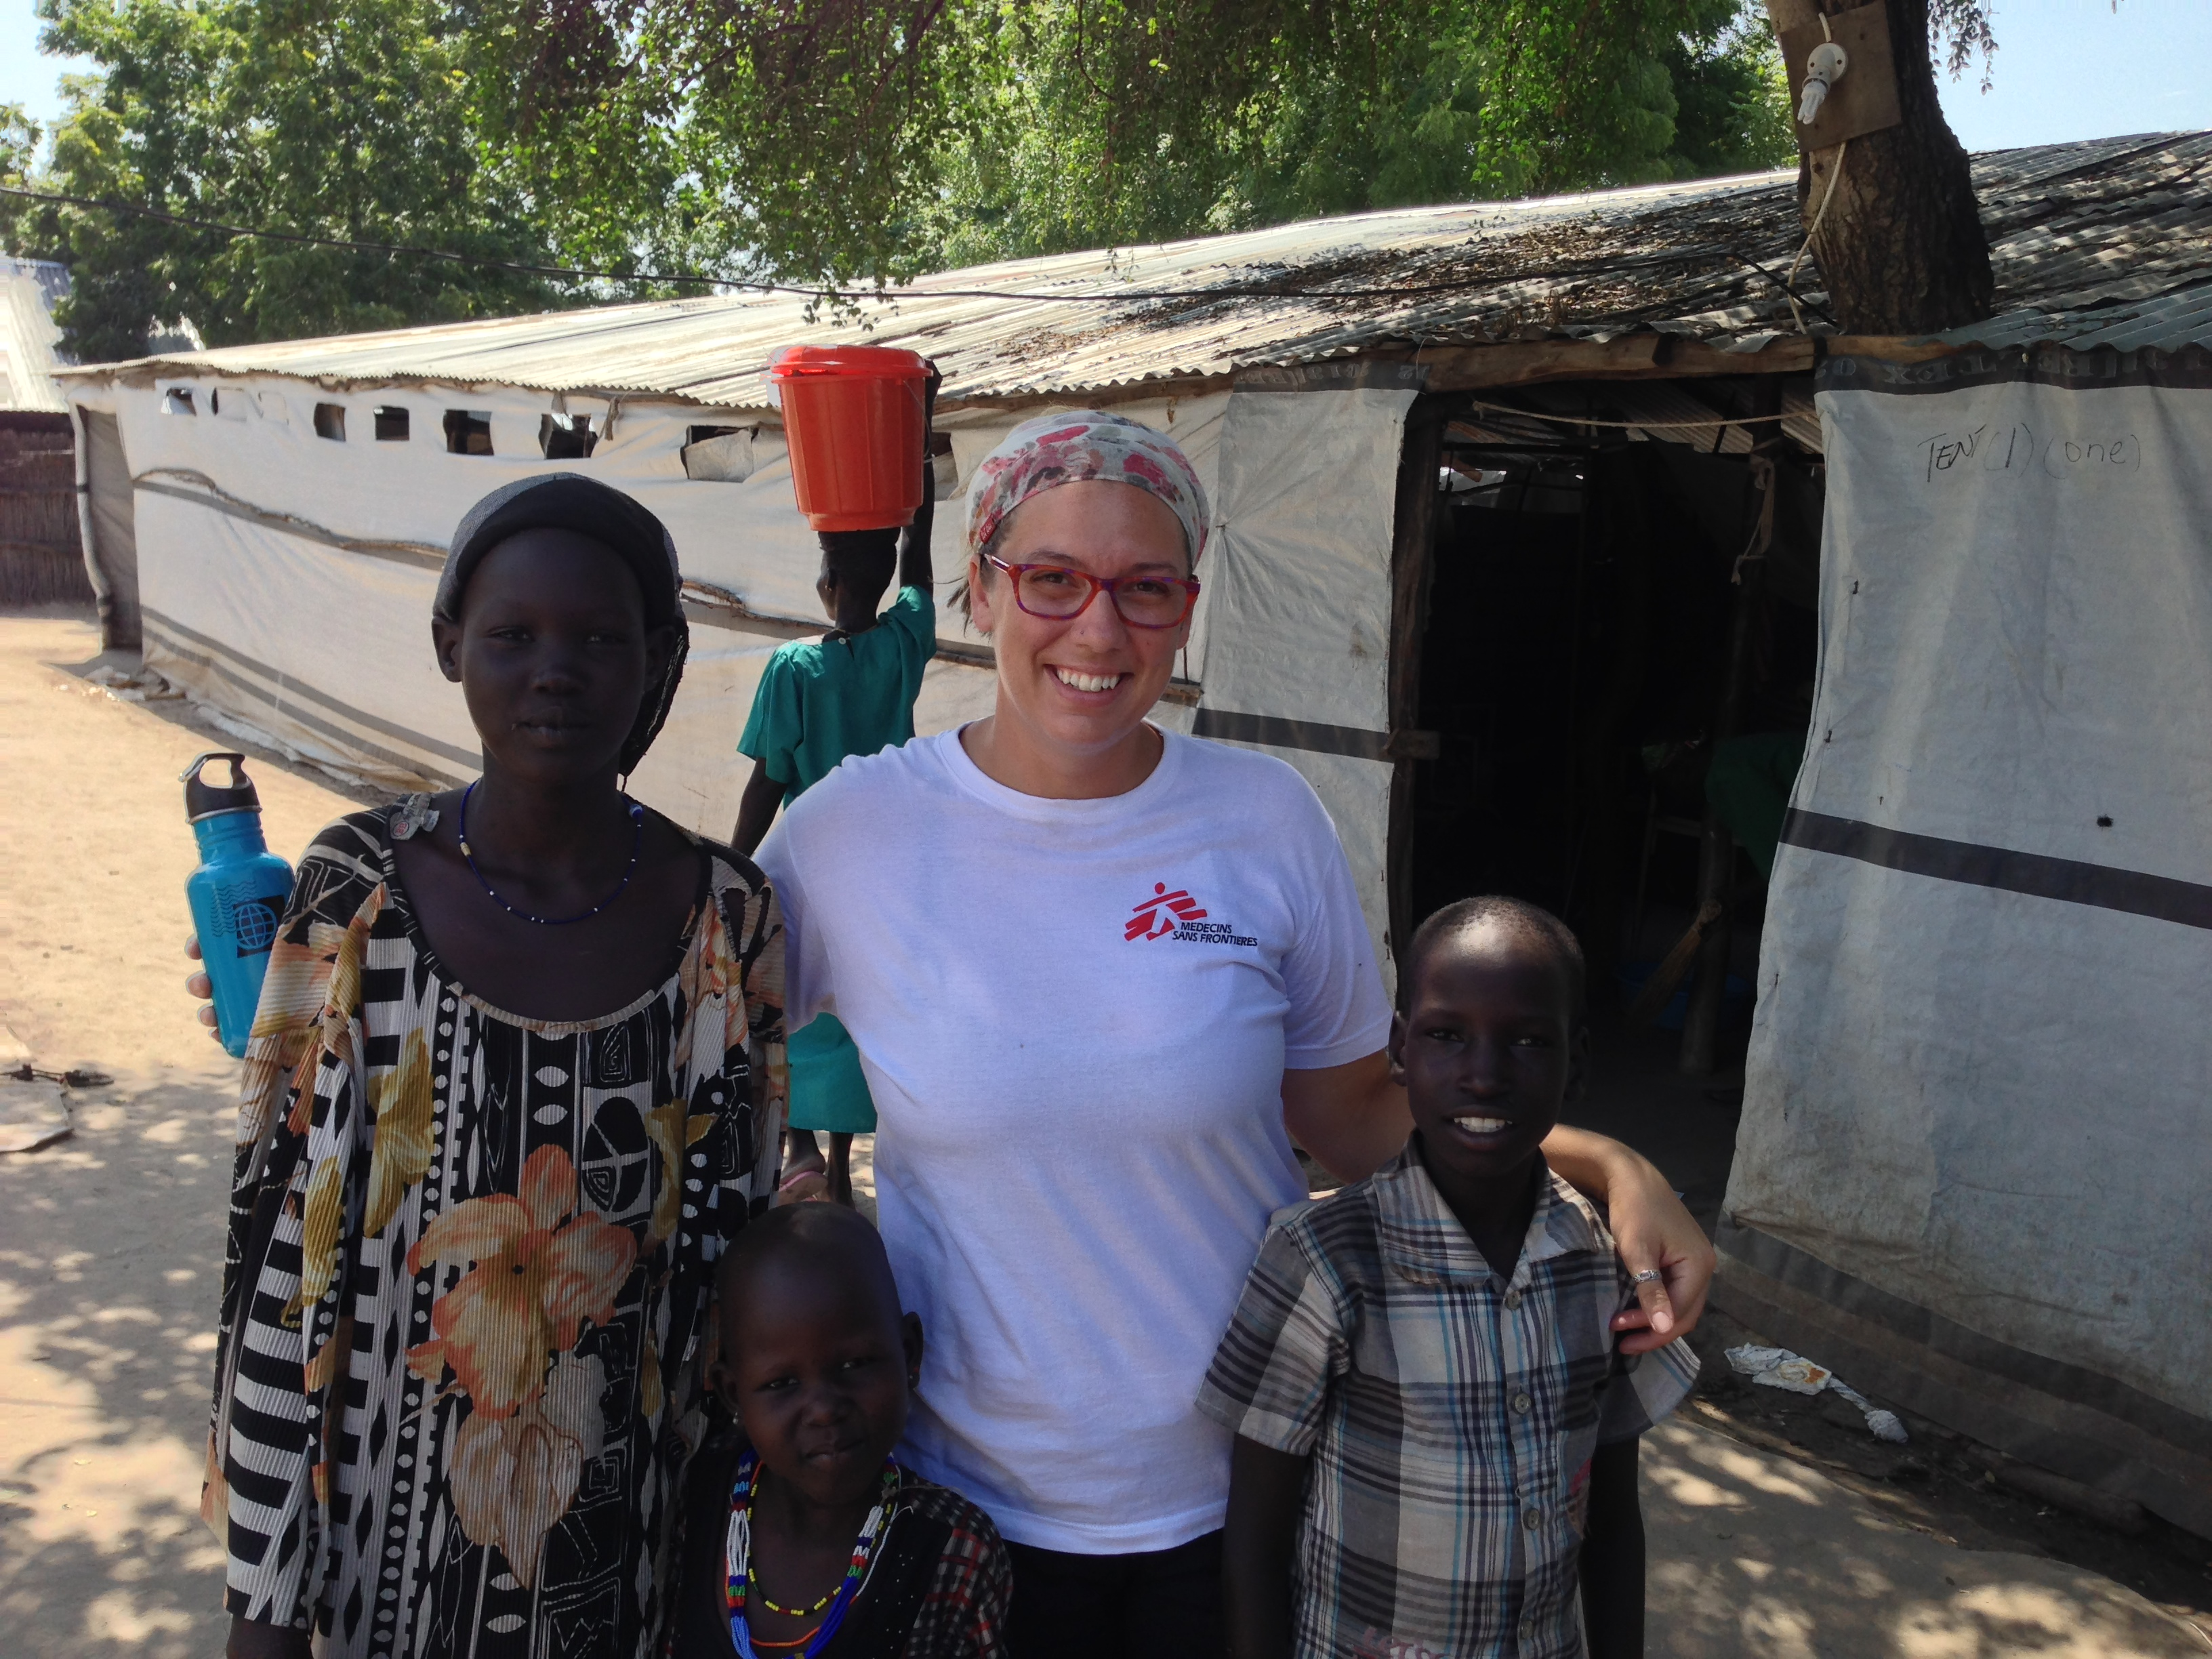 A Doctors Without Borders nurse and two patients smile for a photo.